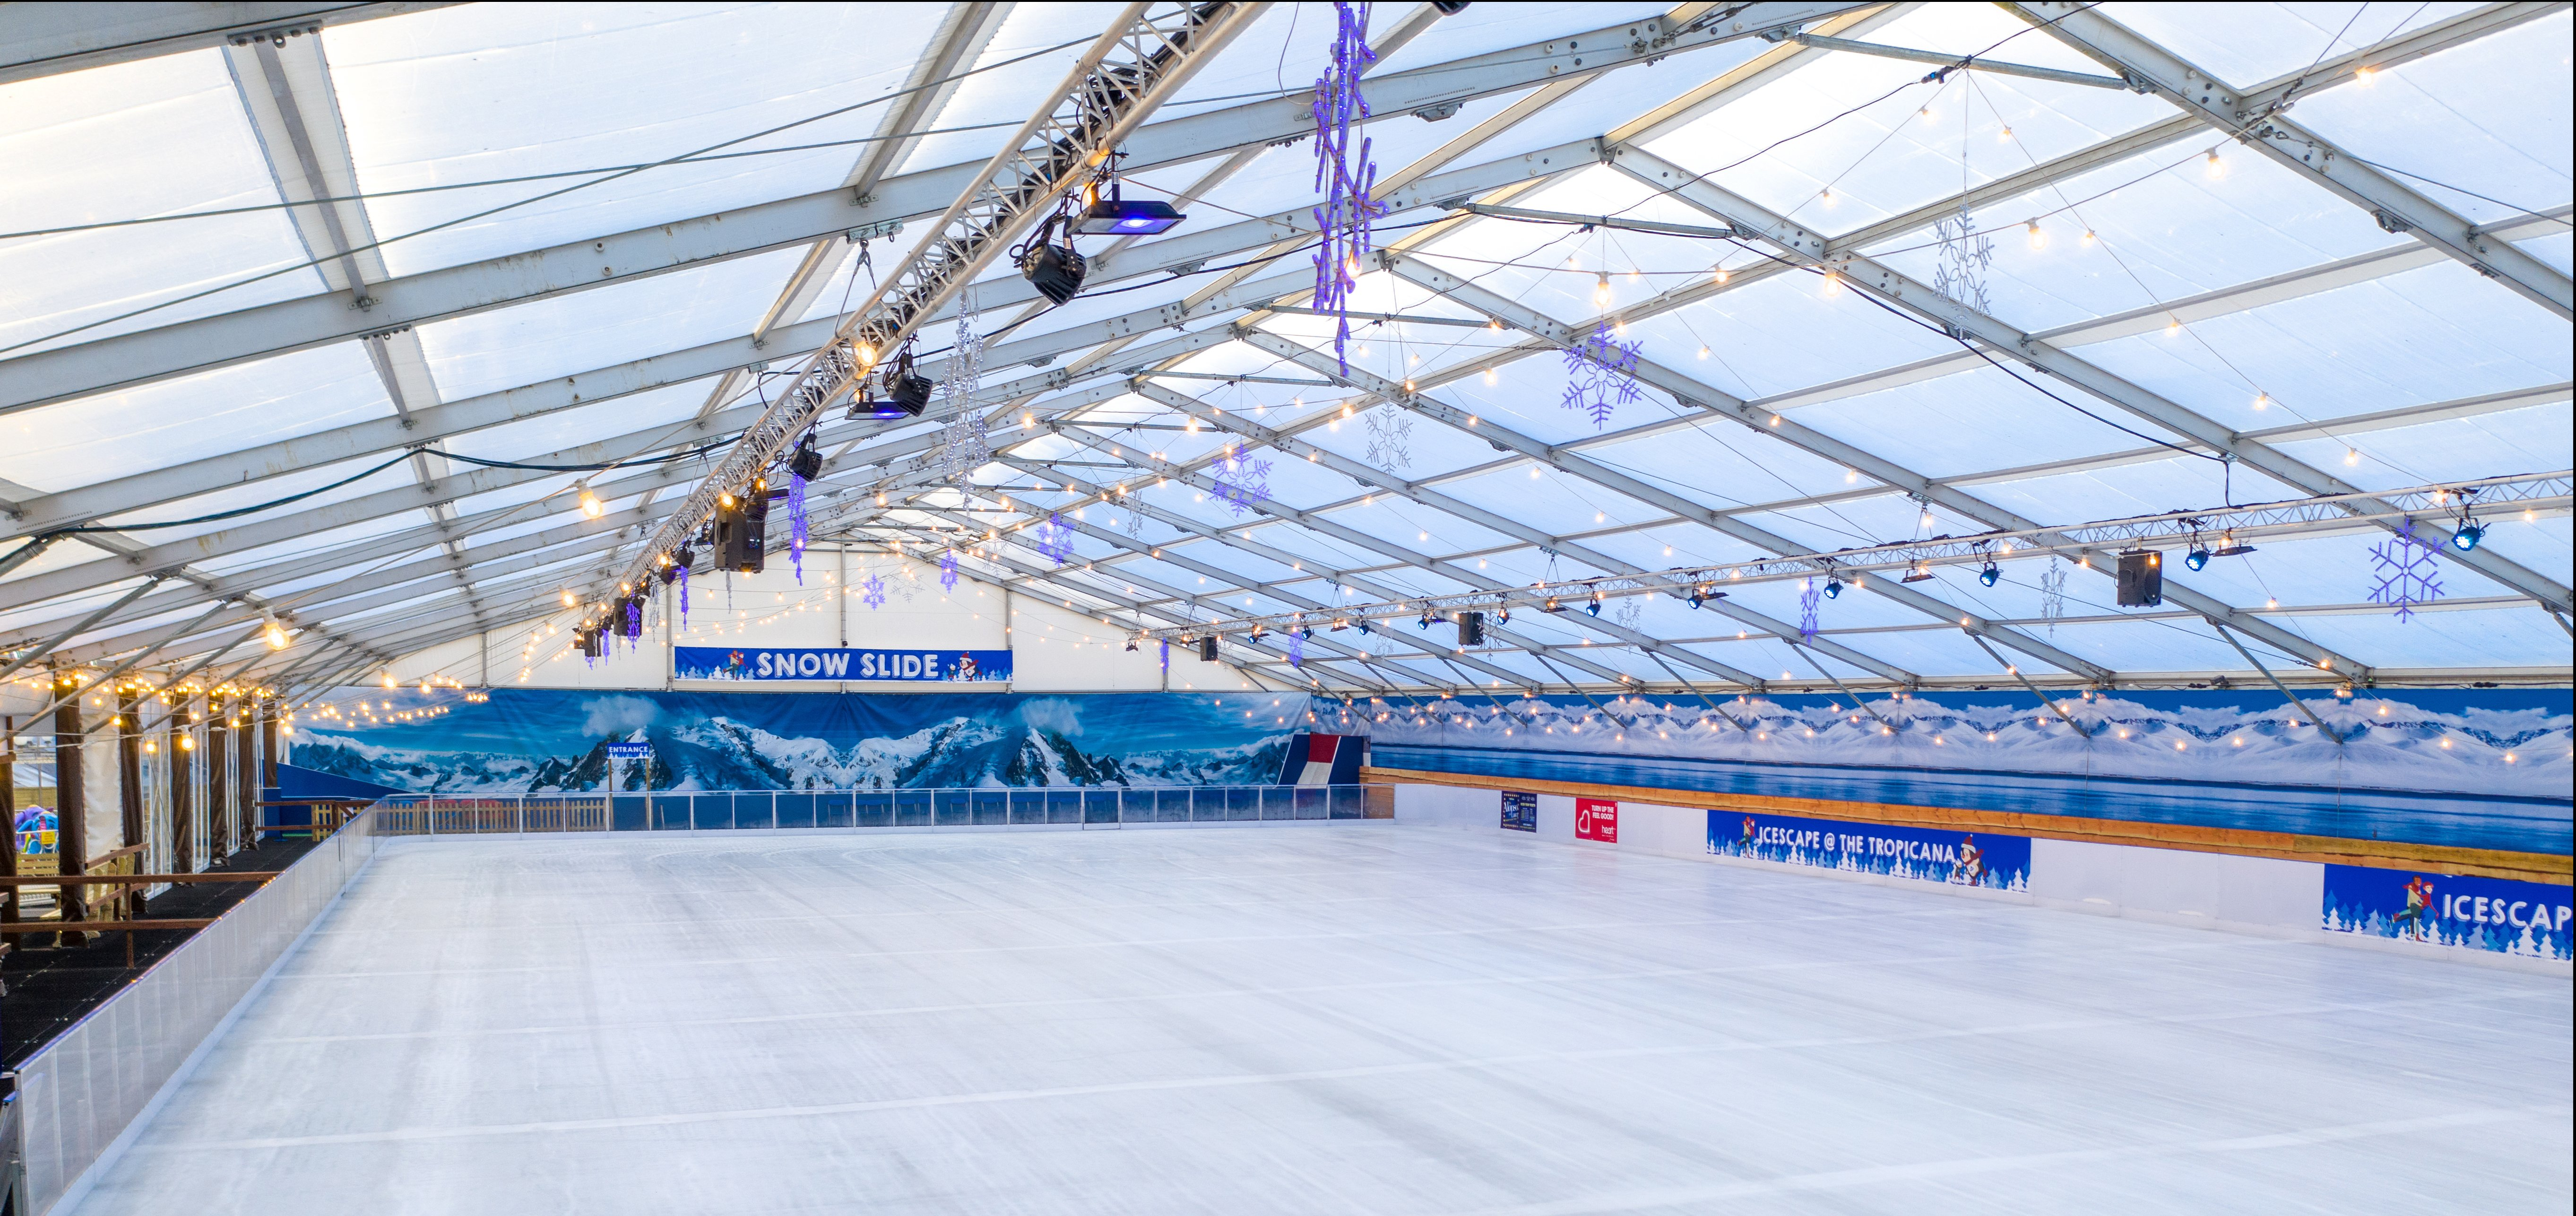 Icescape @ The Tropciana Ice Rink 2018